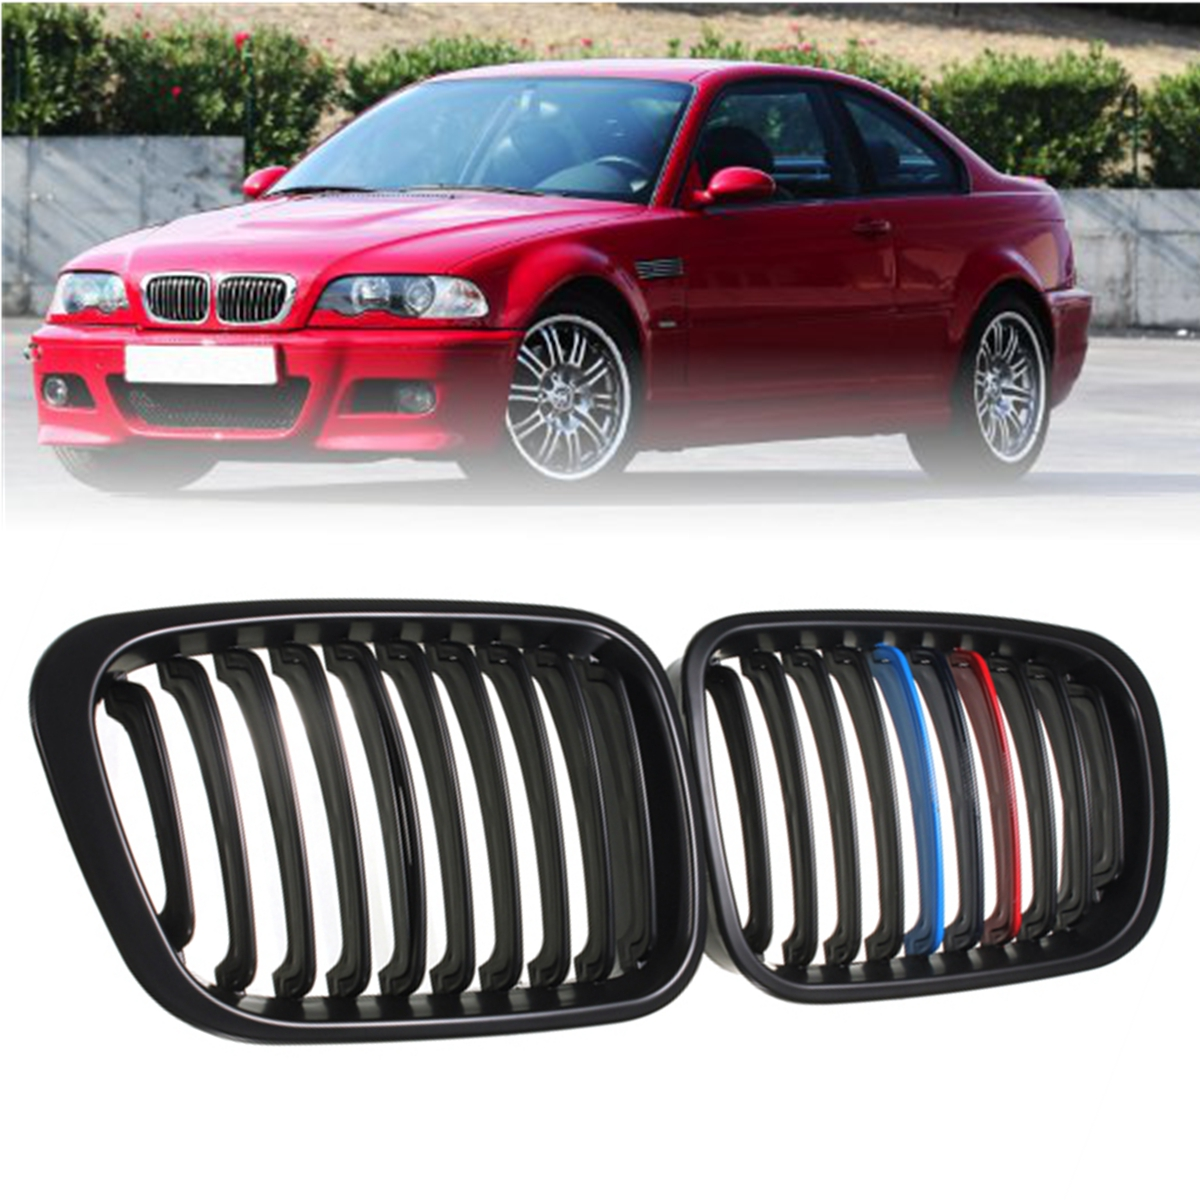 NEW Pair Matte Black M-Color/Gloss Black Car Front Kidney Grill Grilles For BMW E46 3 Series 4 Door Sedan 1998 1999 2000 2001 sugeryy 1 pair car style matte black 3 color front center kidney racing grilles for bmw 3 series e90 e91 2009 2011 car grille